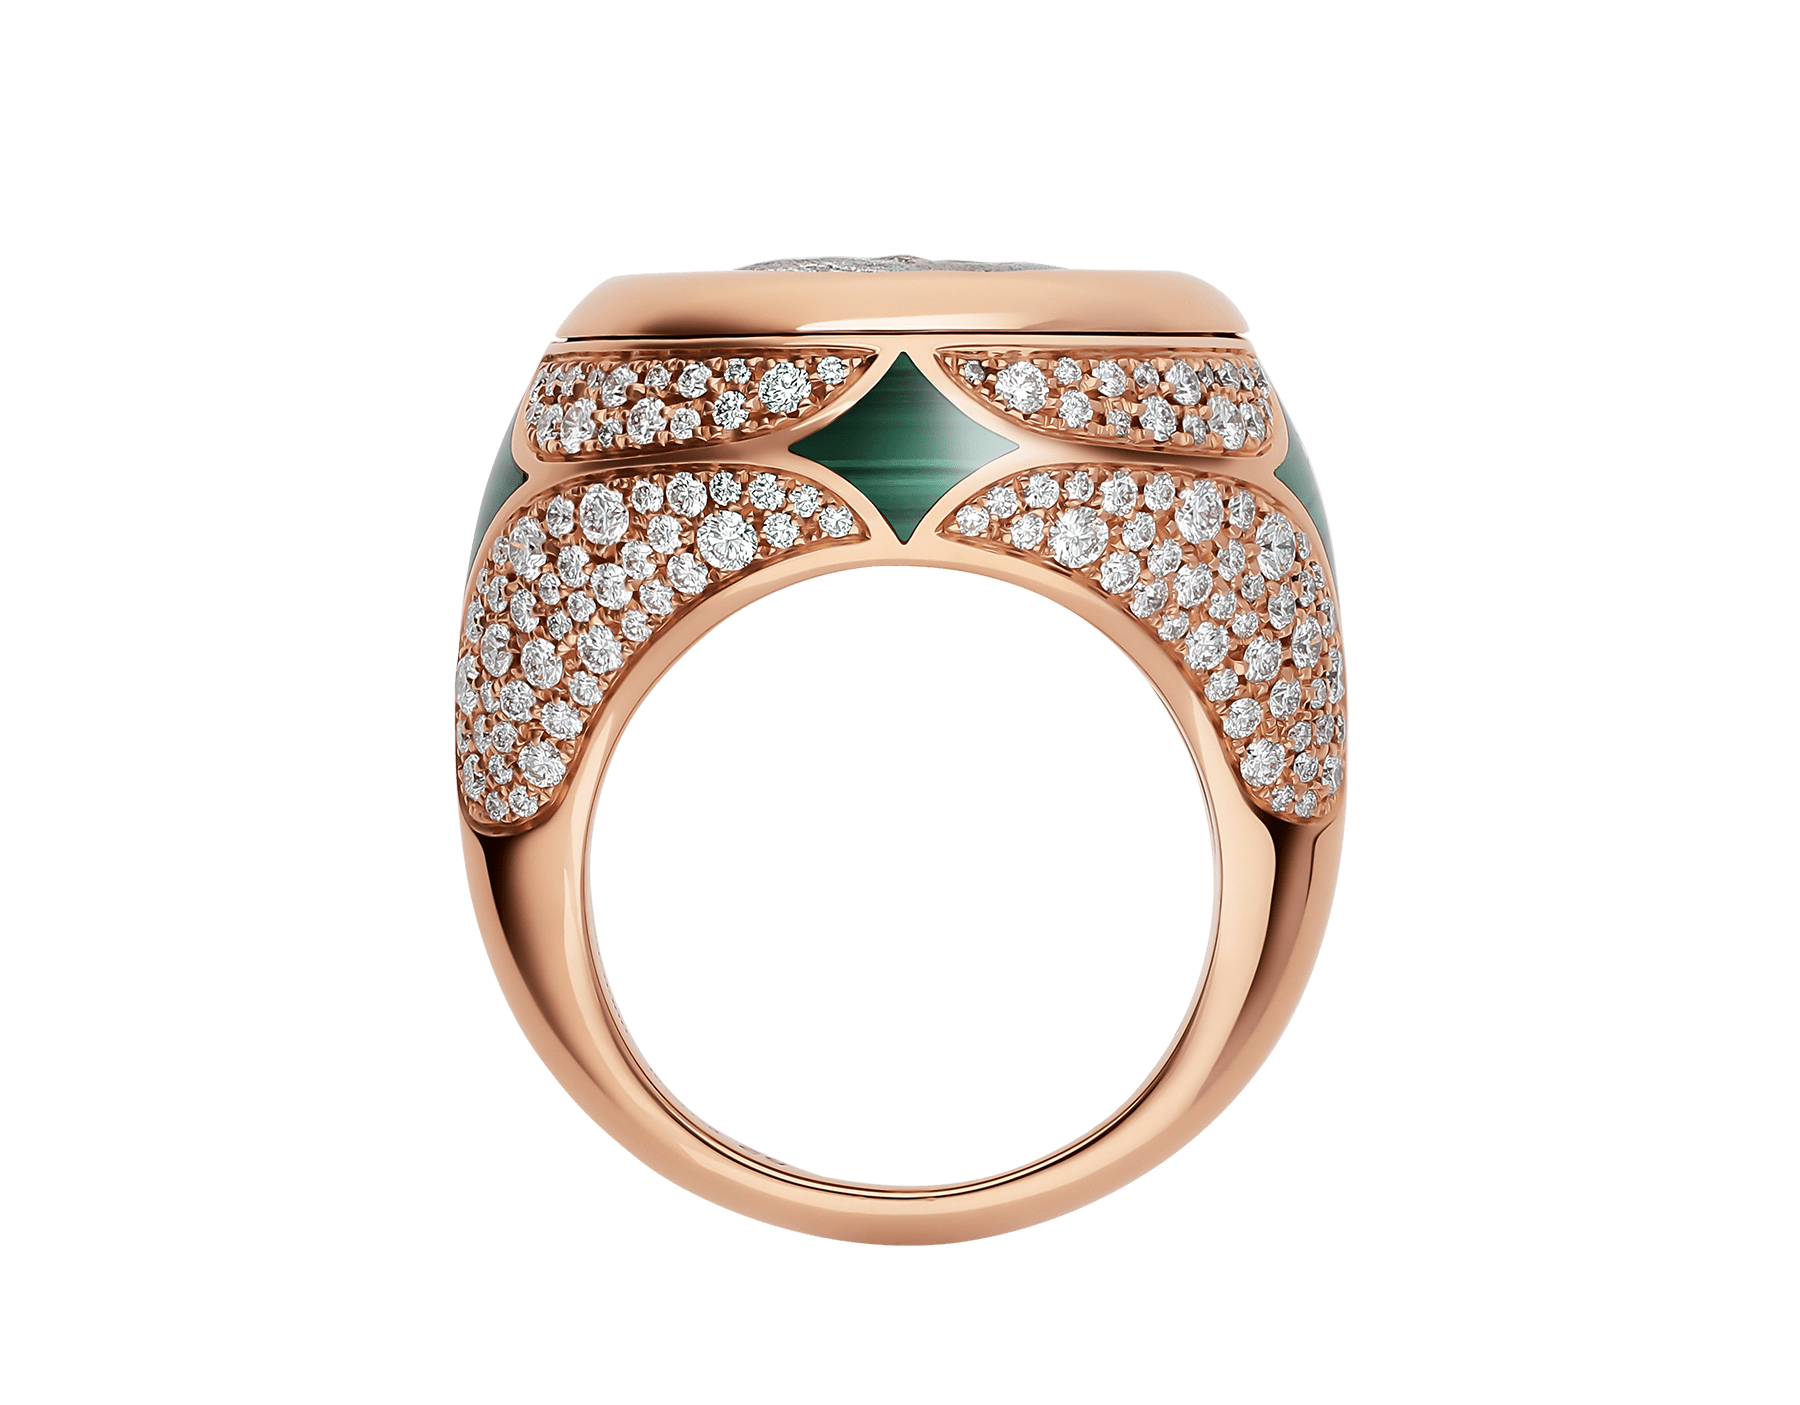 Monete 18 kt rose gold ring set with an ancient coin, malachite elements and pavé diamonds AN858468 image 2